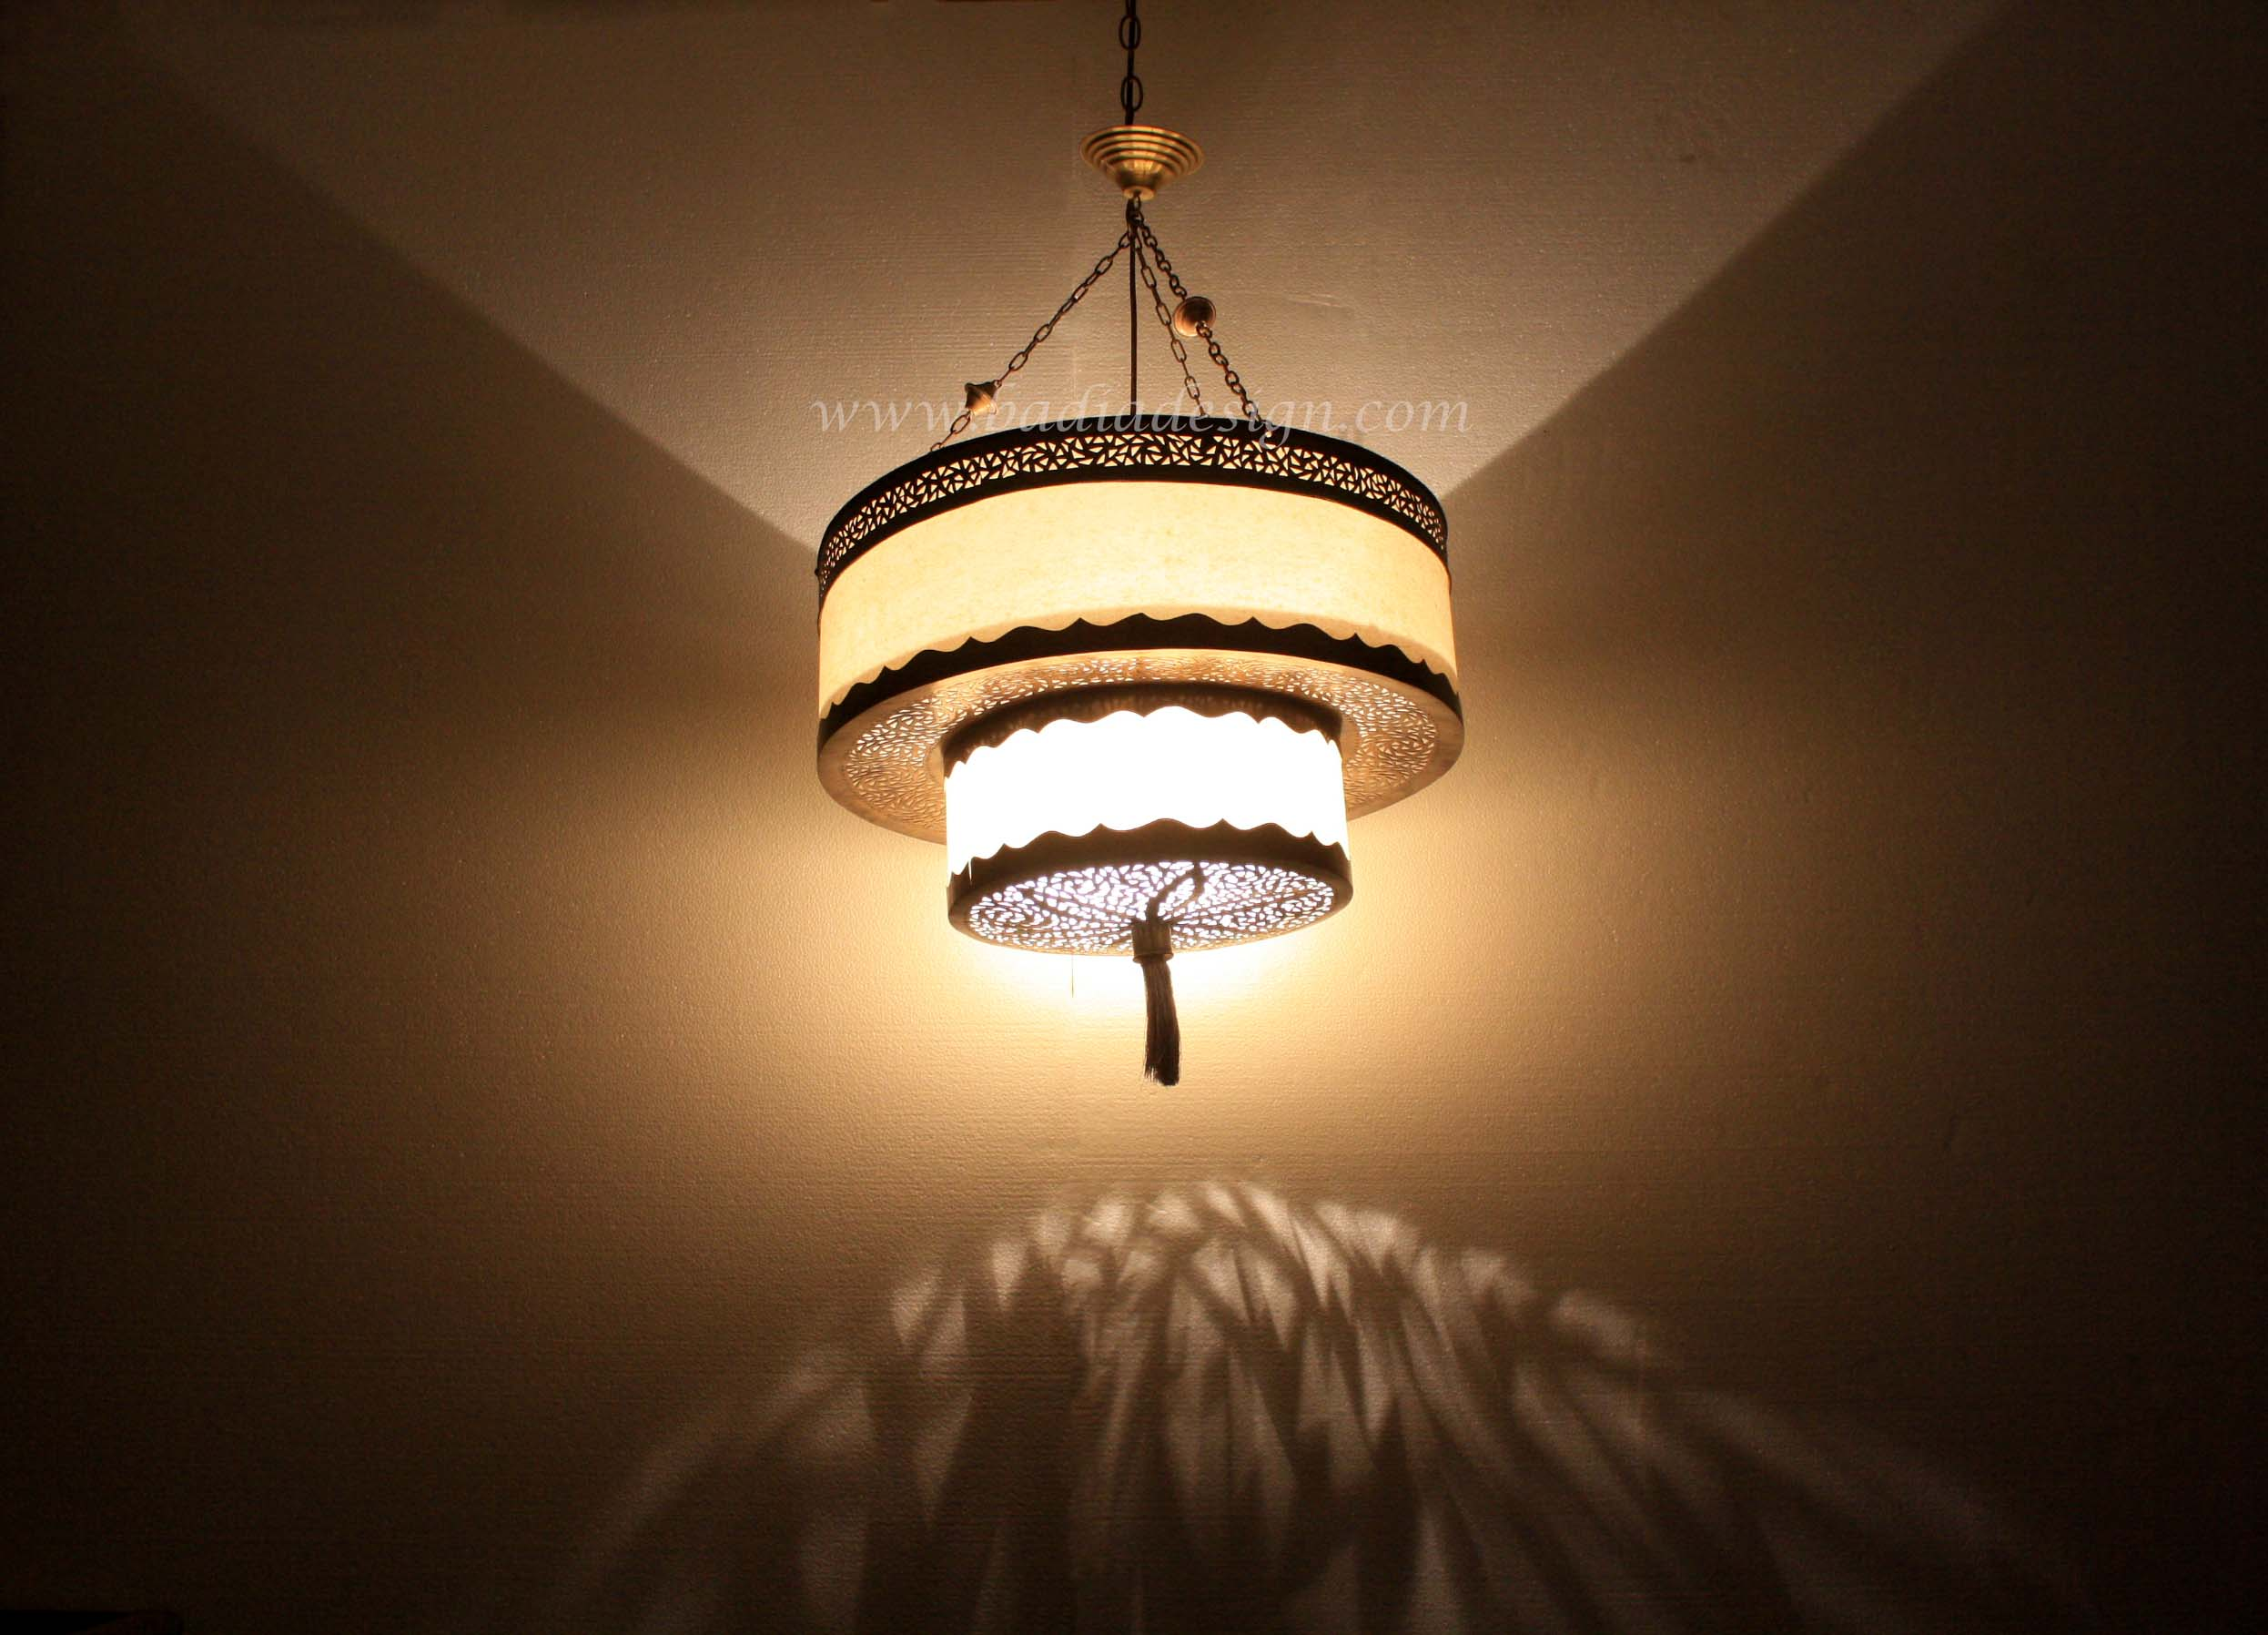 moroccan-upside-down-cake-light-fixture-lig248-1.jpg